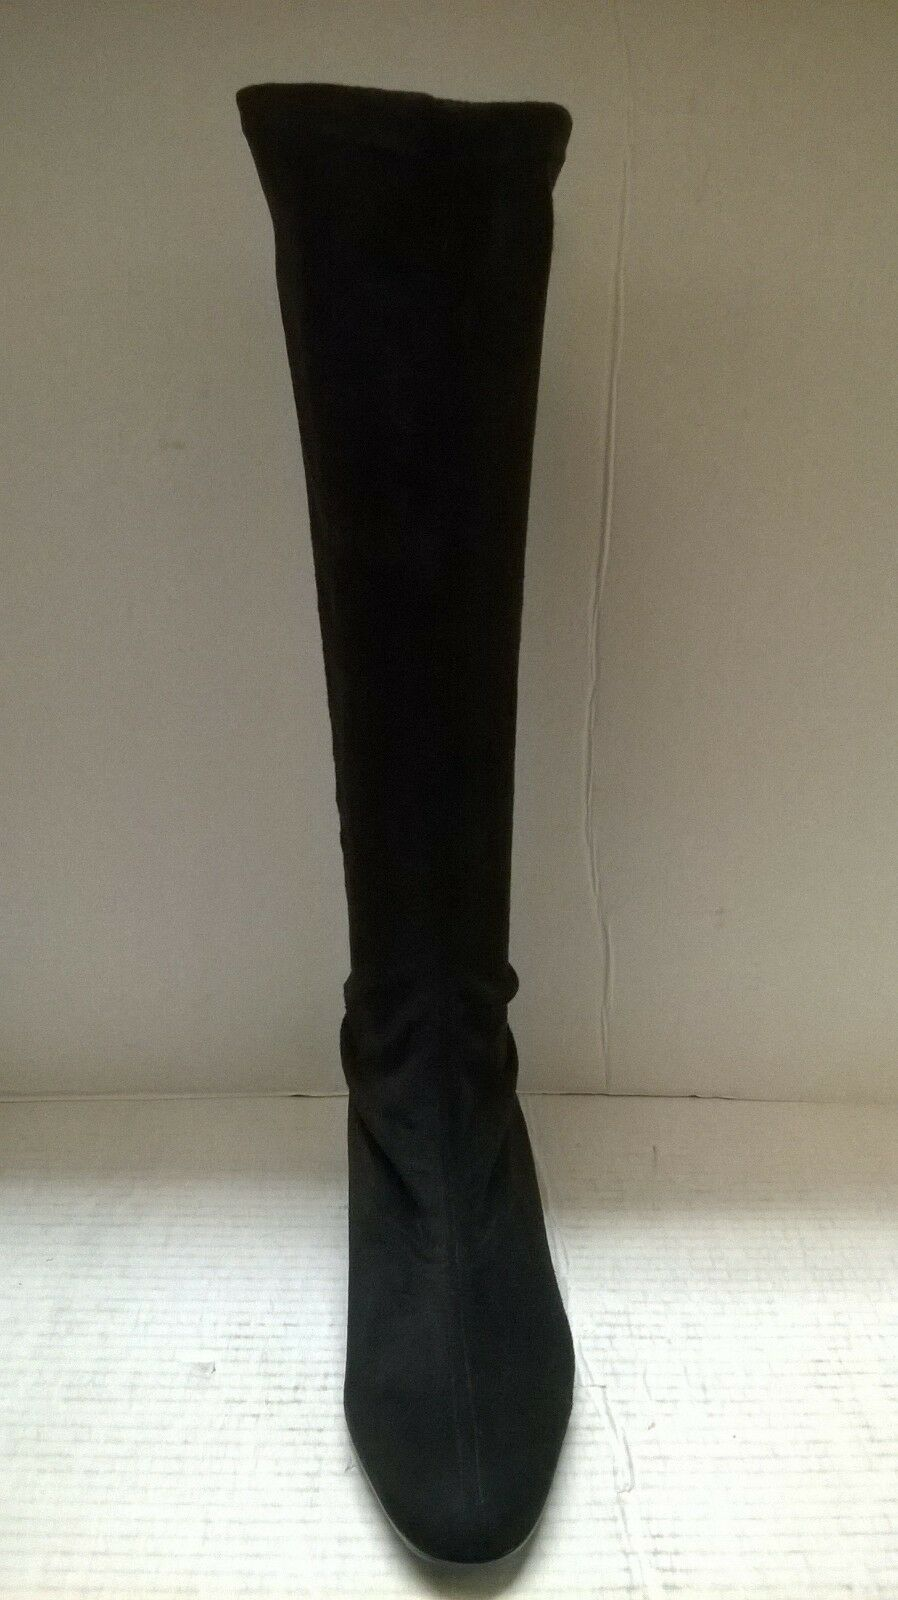 MUNRO Donna ANN TALL DRESSY STRETCHY BOOT BLACK SIZE 6.5M, IN MADE IN 6.5M,  U.S.A. 2de376